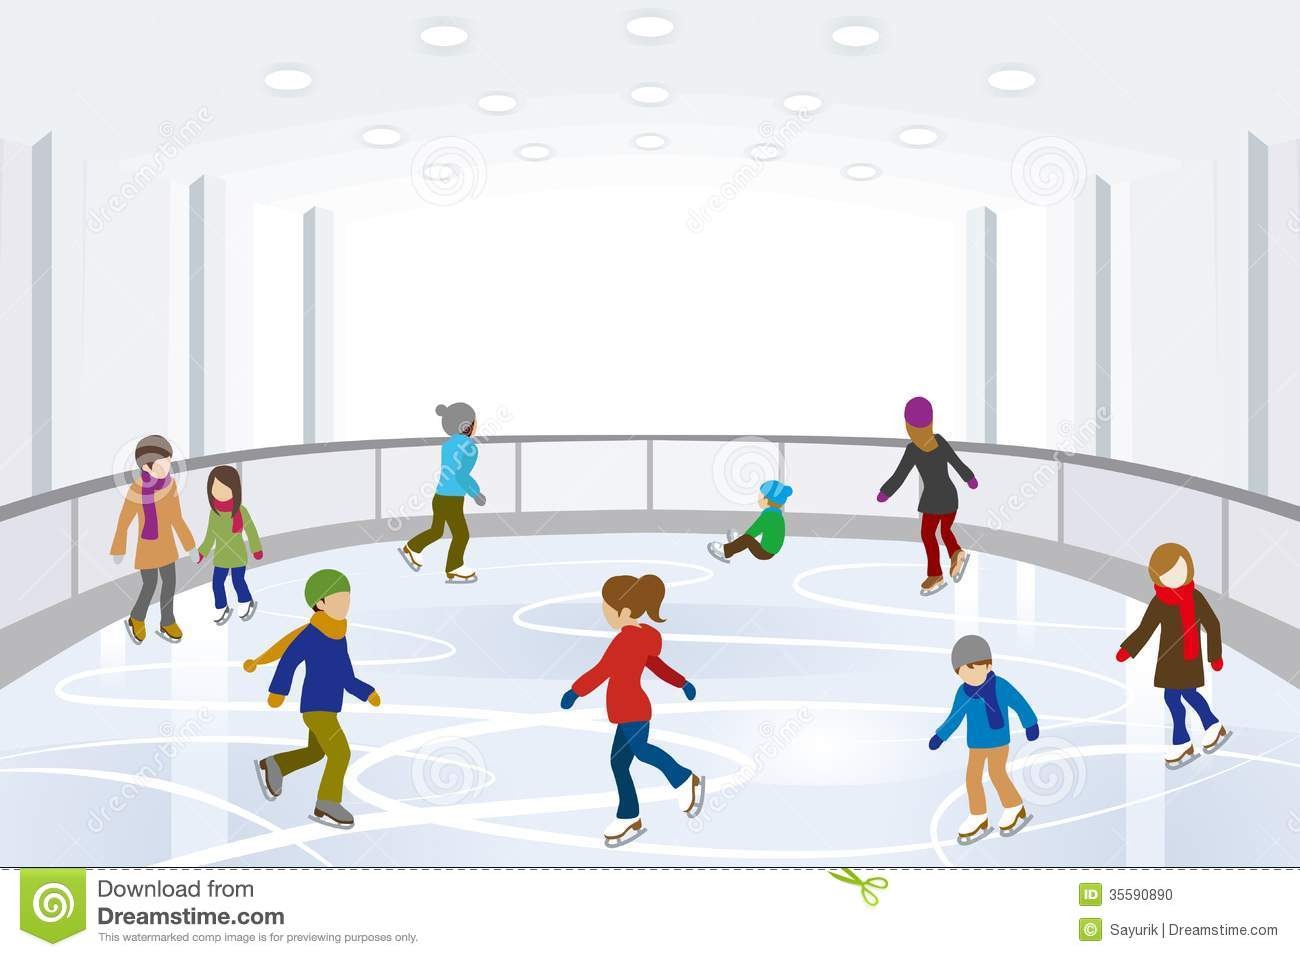 People Ice Skating In Indoor Ice Rink Stock Photo   Image  35590890